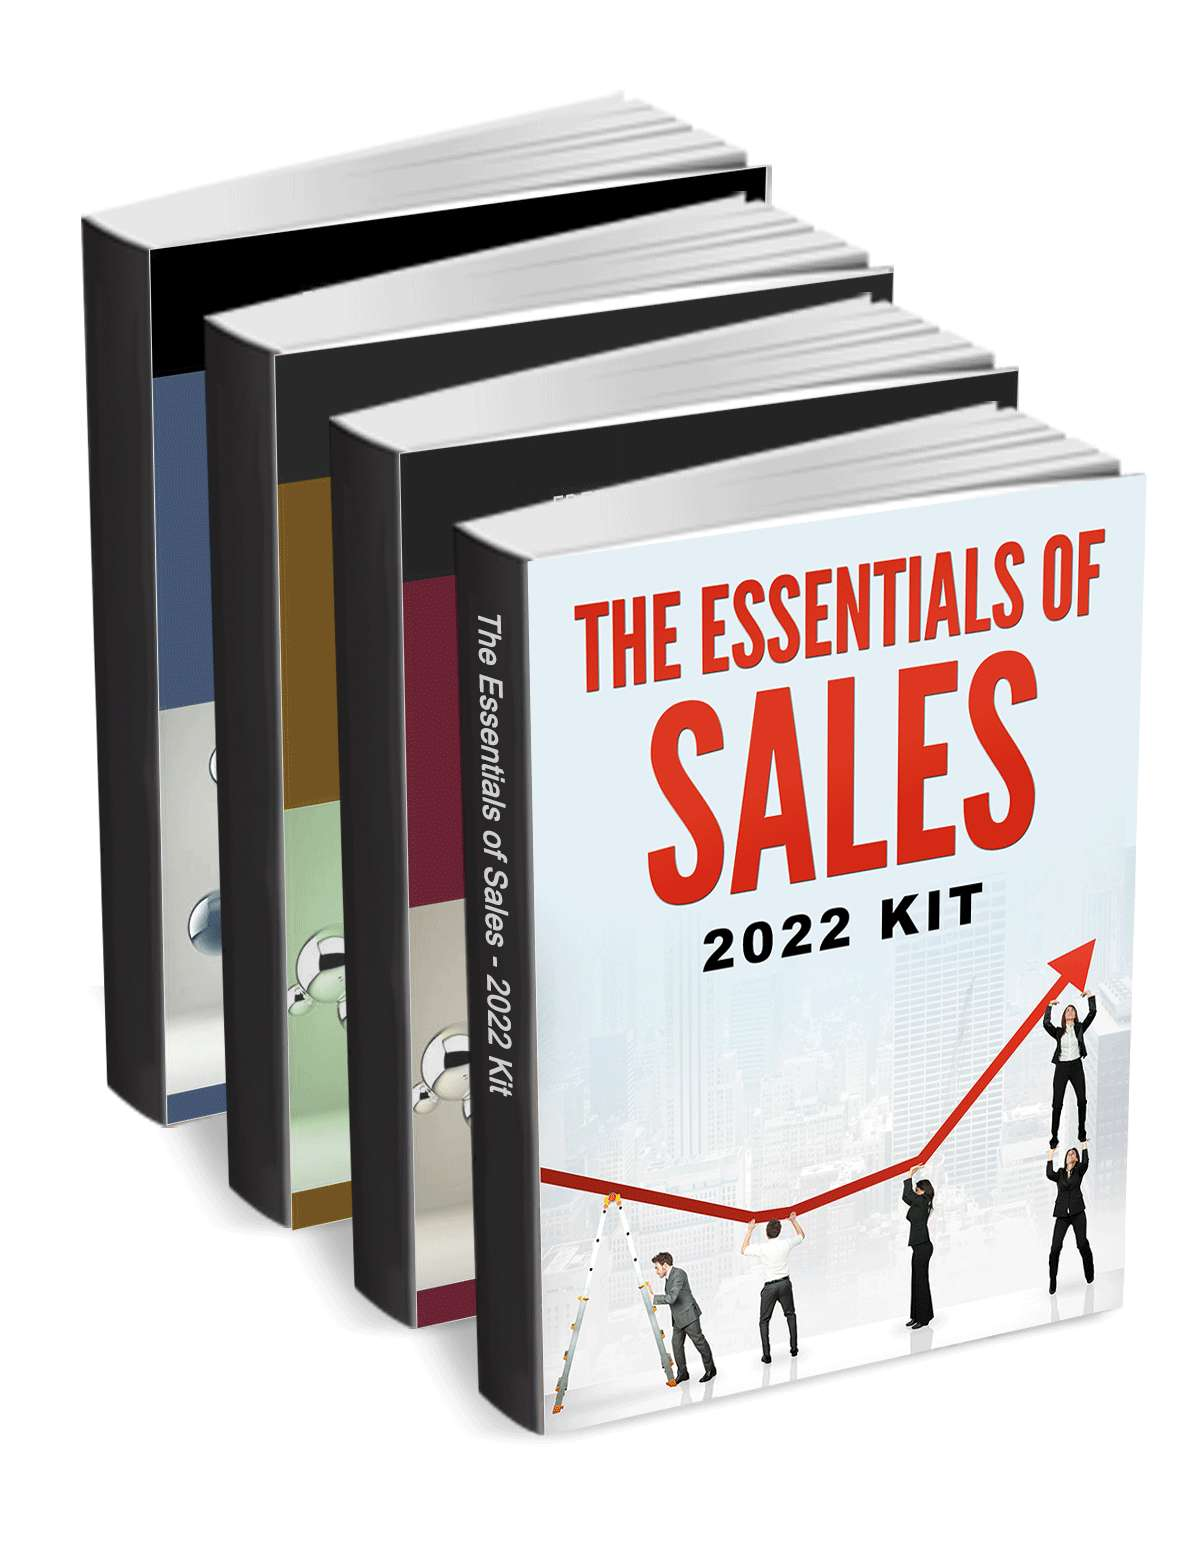 The Essentials of Sales - Fall 2016 Kit